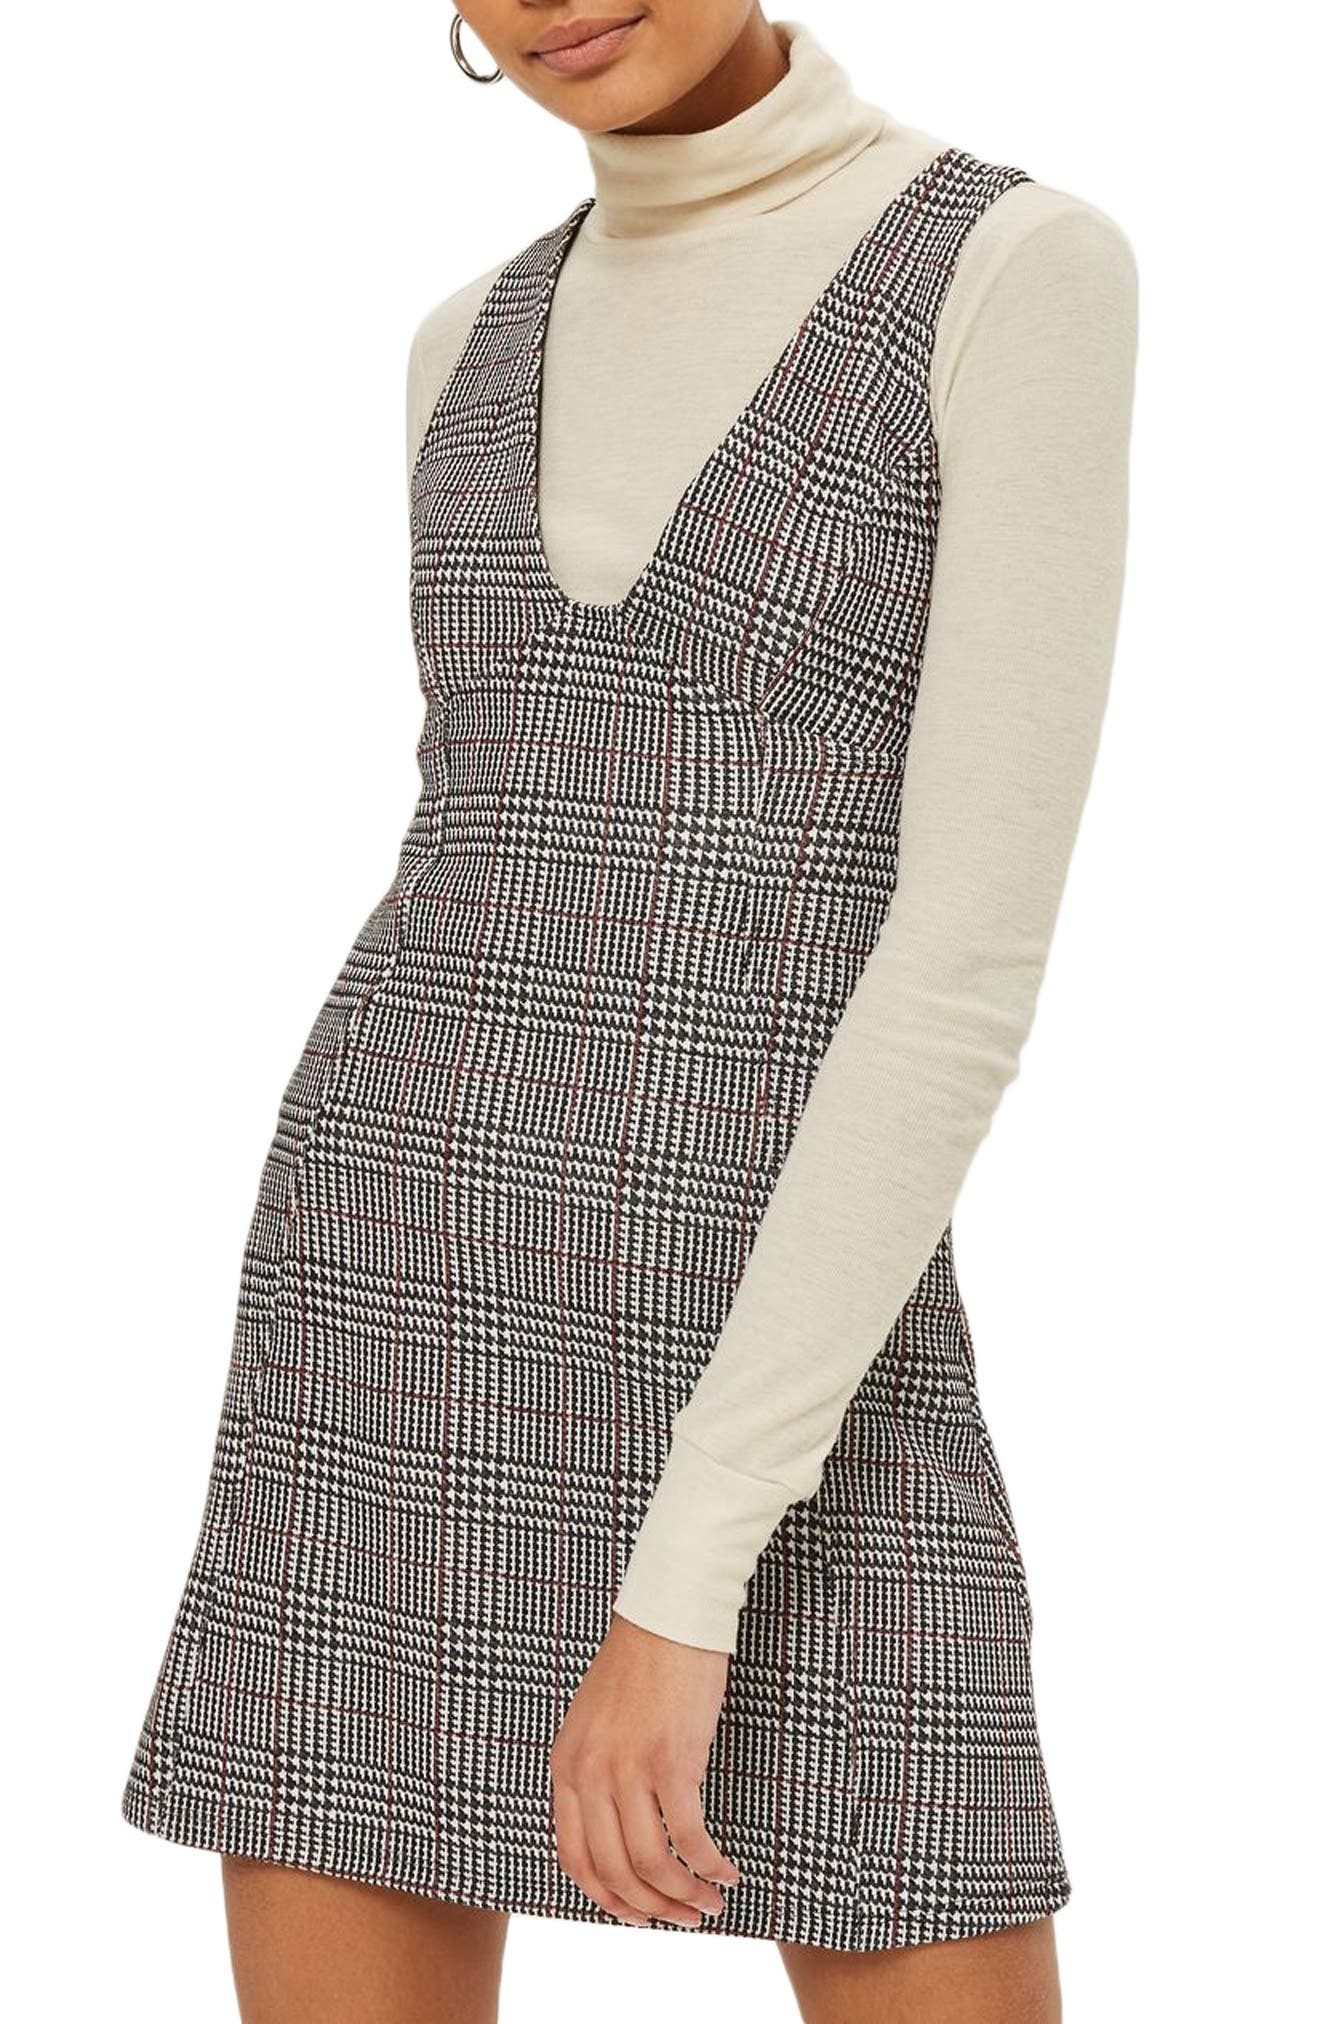 Alternate Image 1 Selected - Topshop Plaid A-Line Pinafore Dress